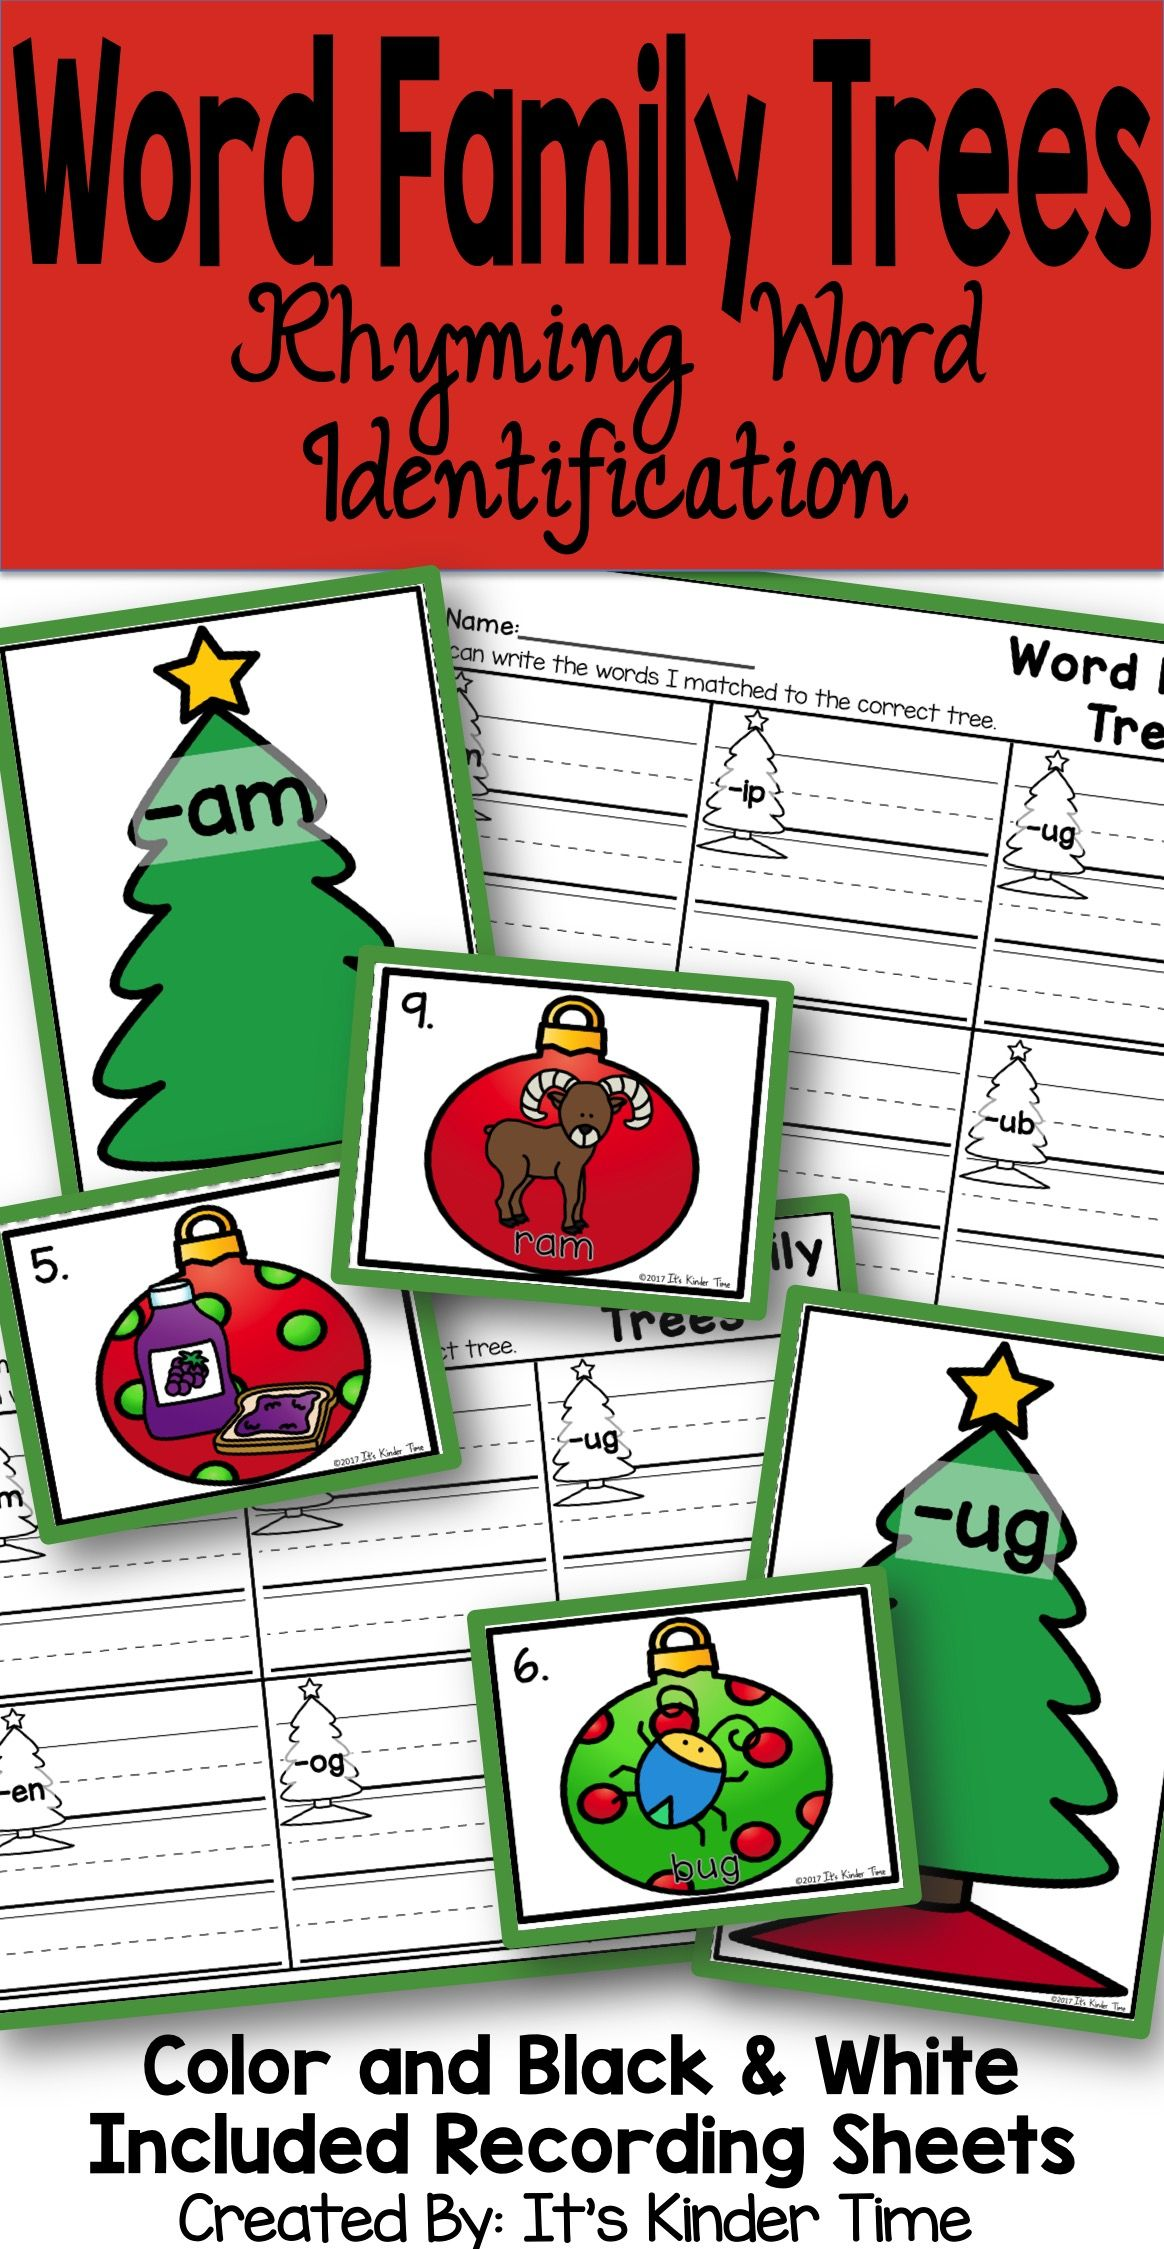 Word Family Trees - Rhyming Word Identification | Pinterest | Group ...